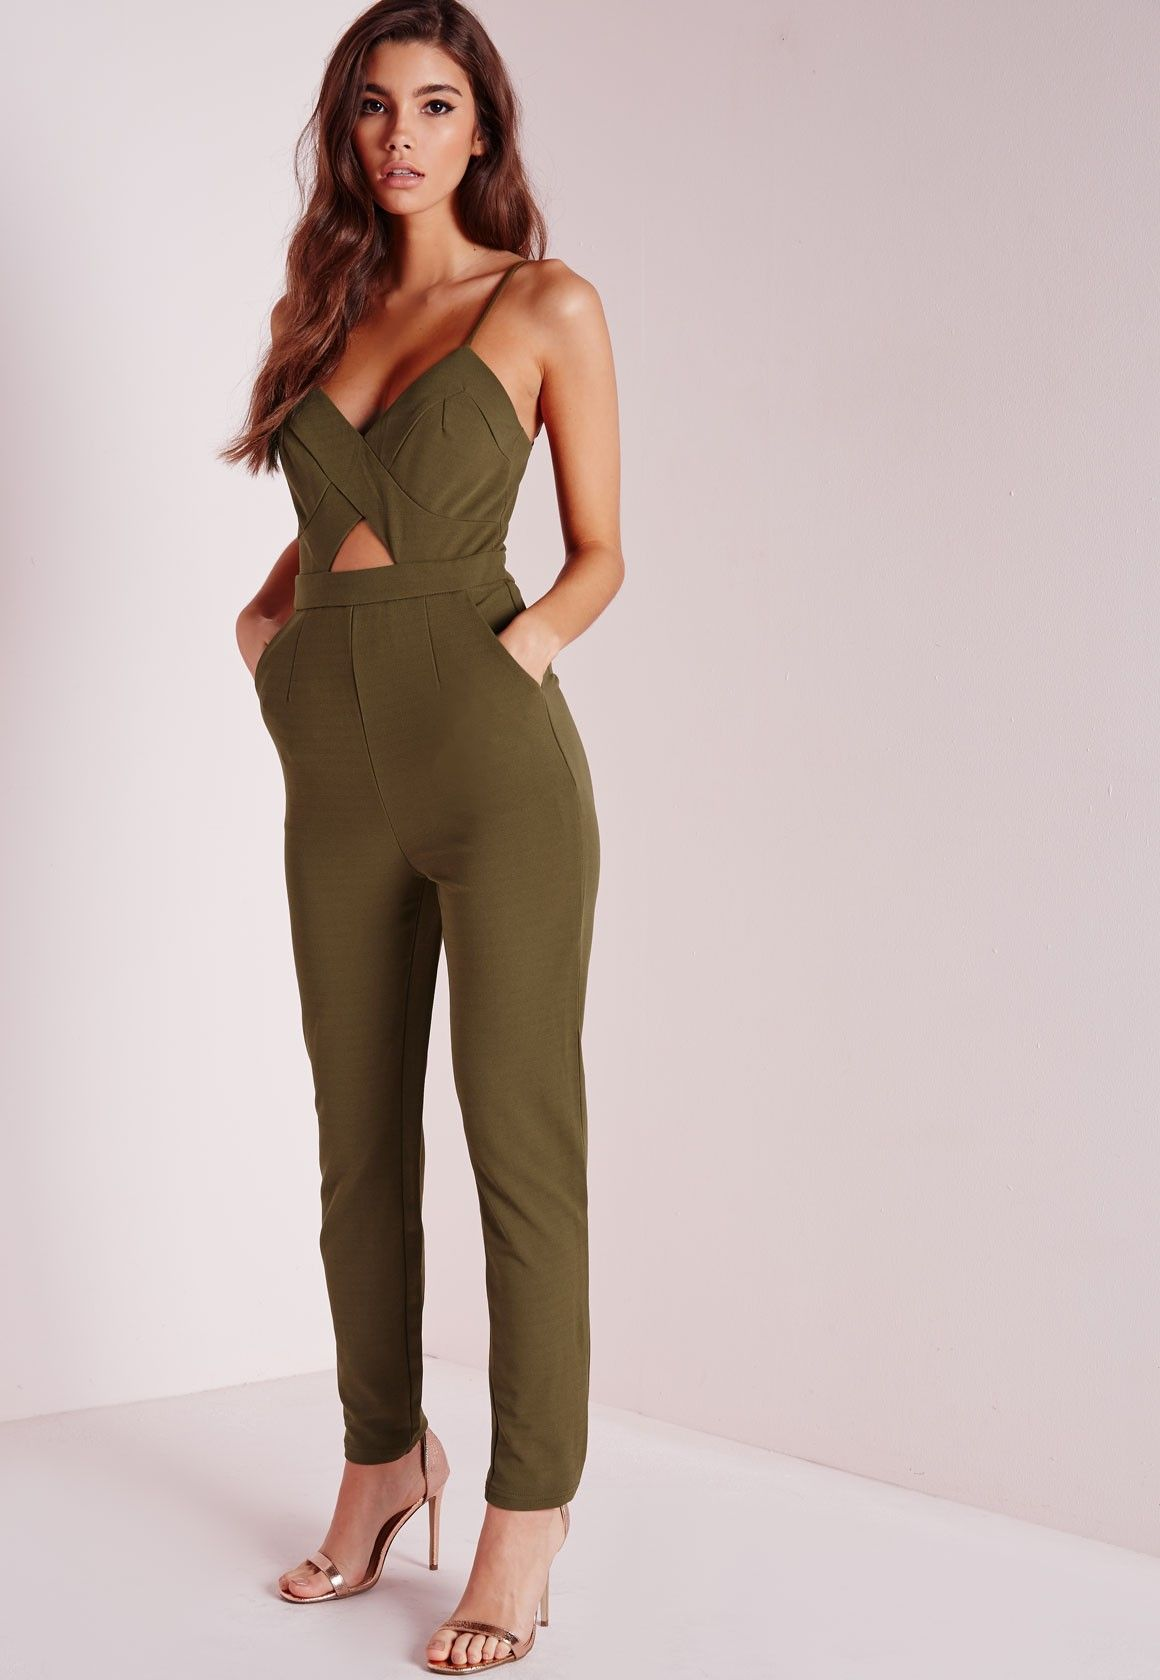 546d85f2d11931 Missguided - Strappy Cut Out Jumpsuit Khaki | Rompers in 2019 ...